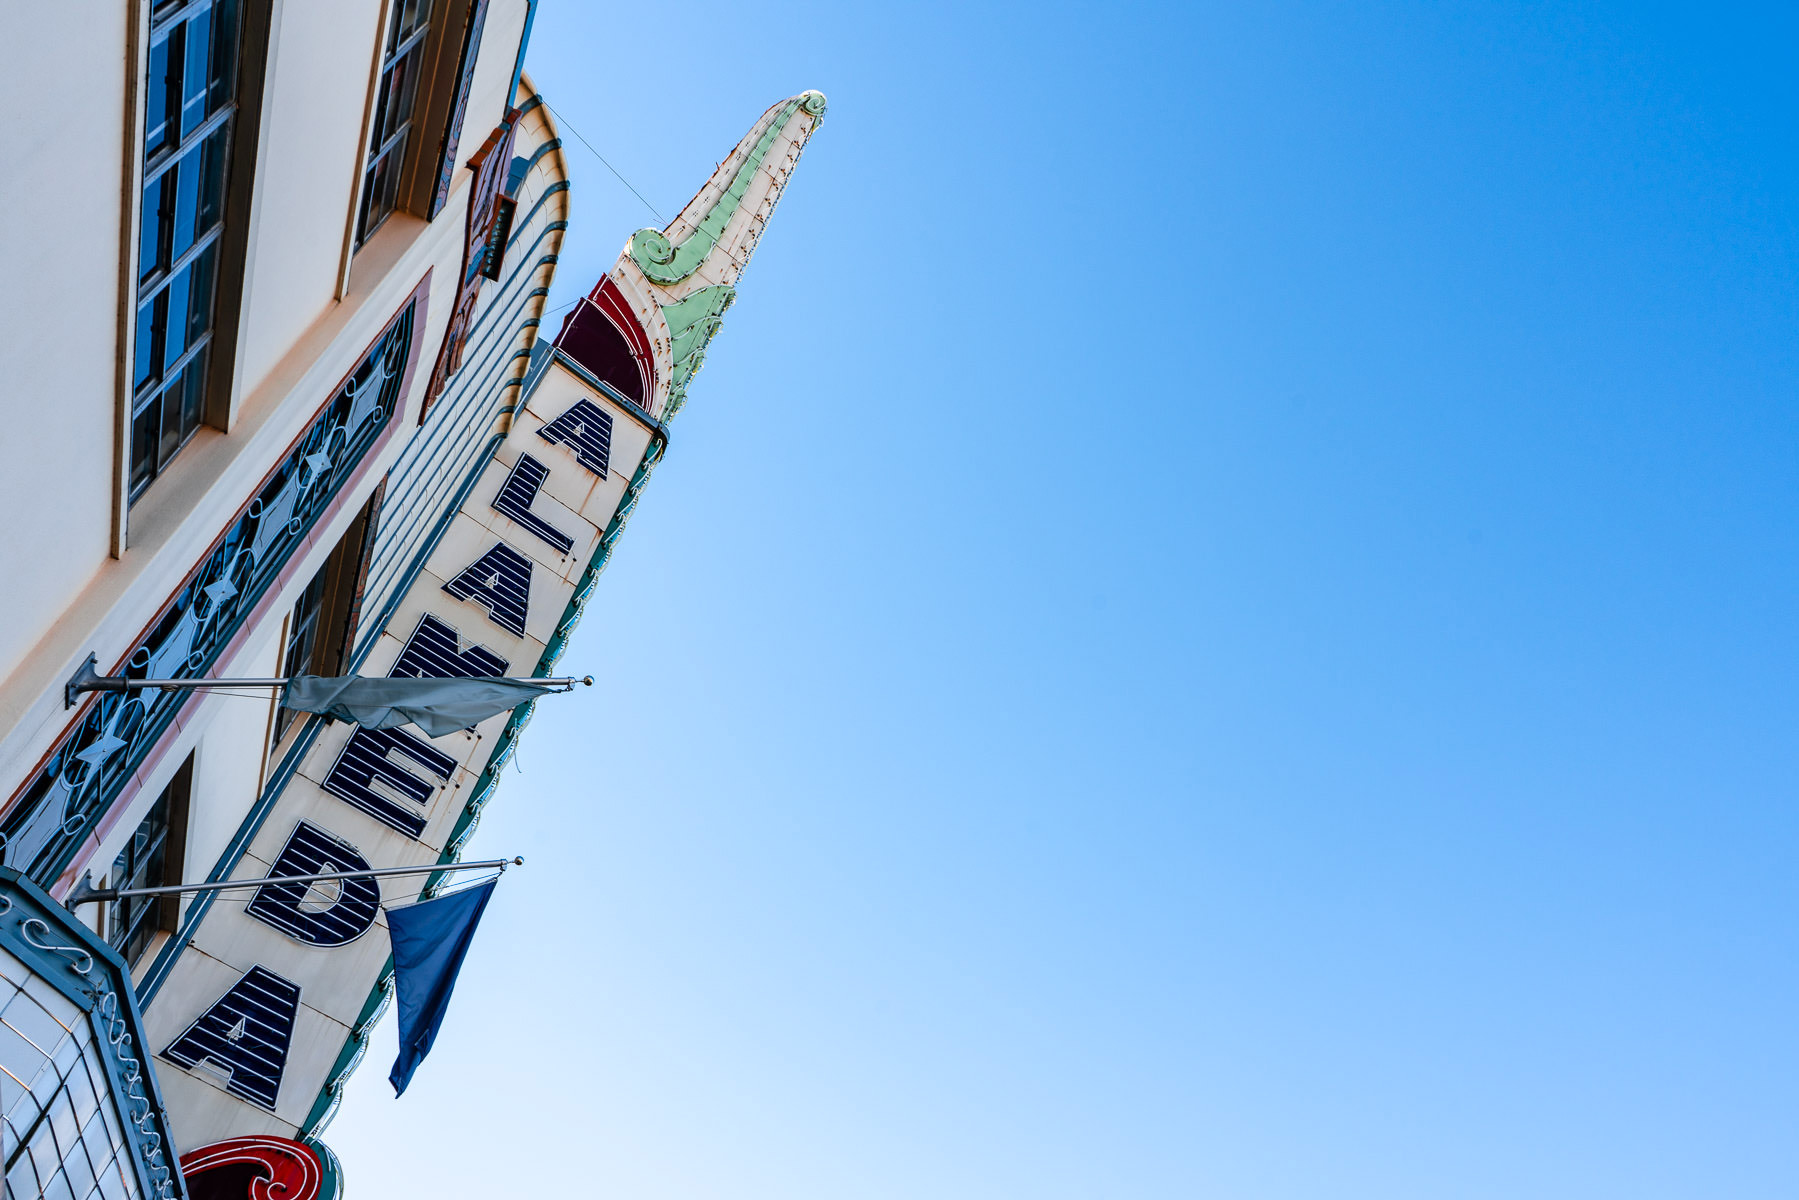 The sign of the historic Alameda Theater rises into the blue sky over Downtown San Antonio, Texas.